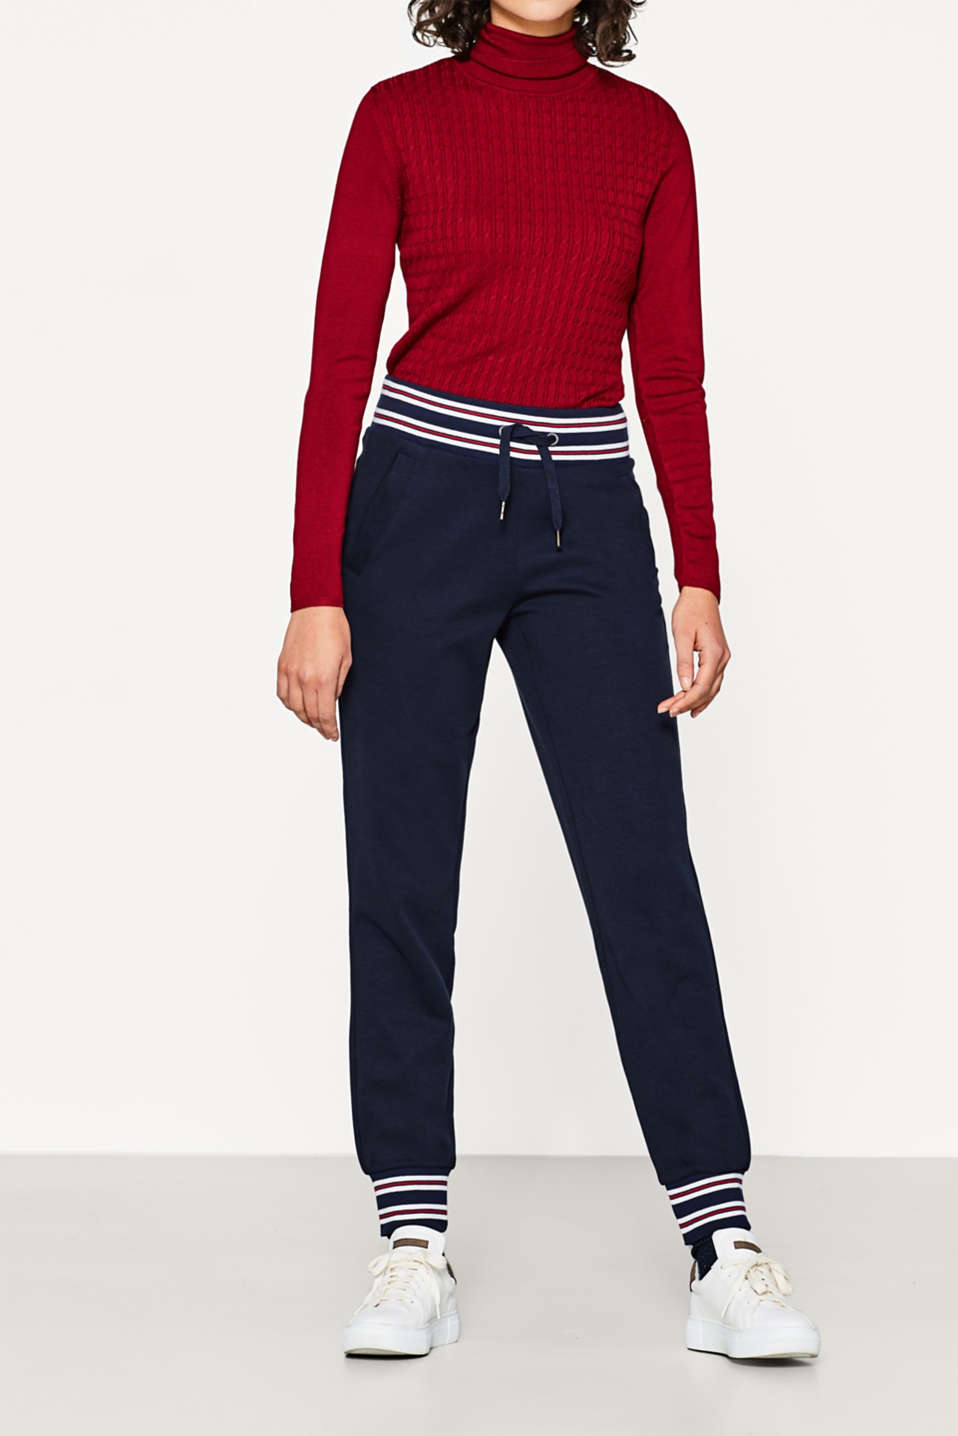 edc - Tracksuit bottoms, striped borders